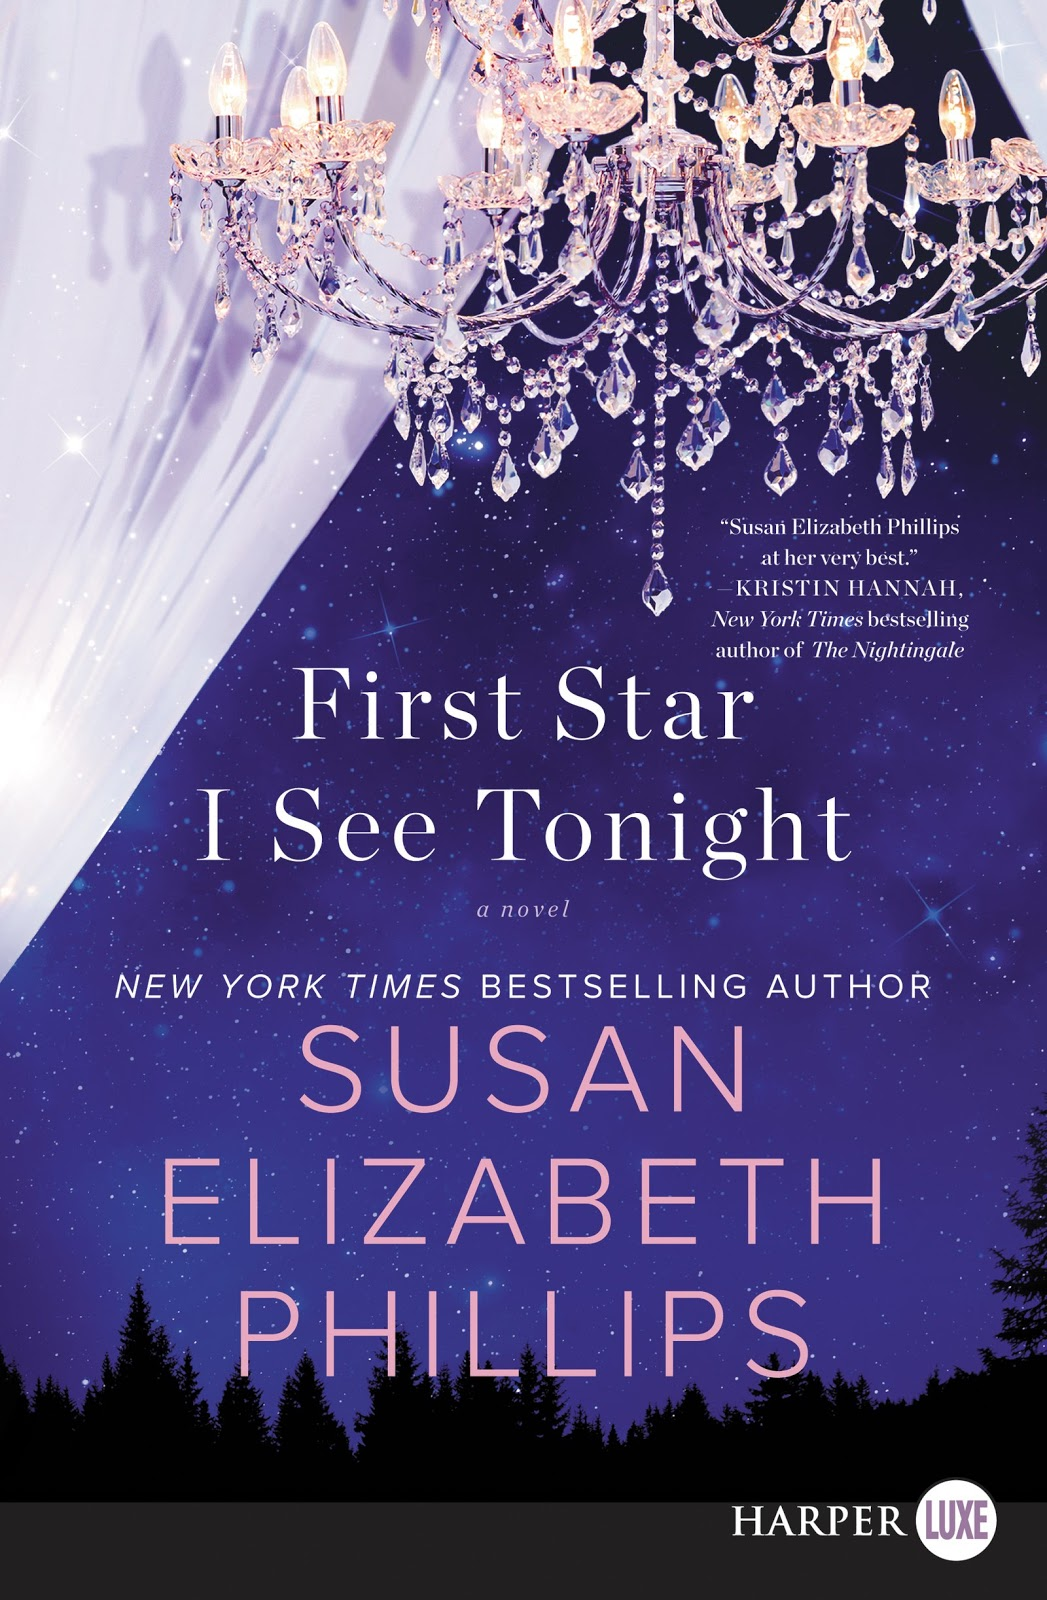 First Star I See Tonight (Chicago Stars #8) by Susan Elizabeth Phillips